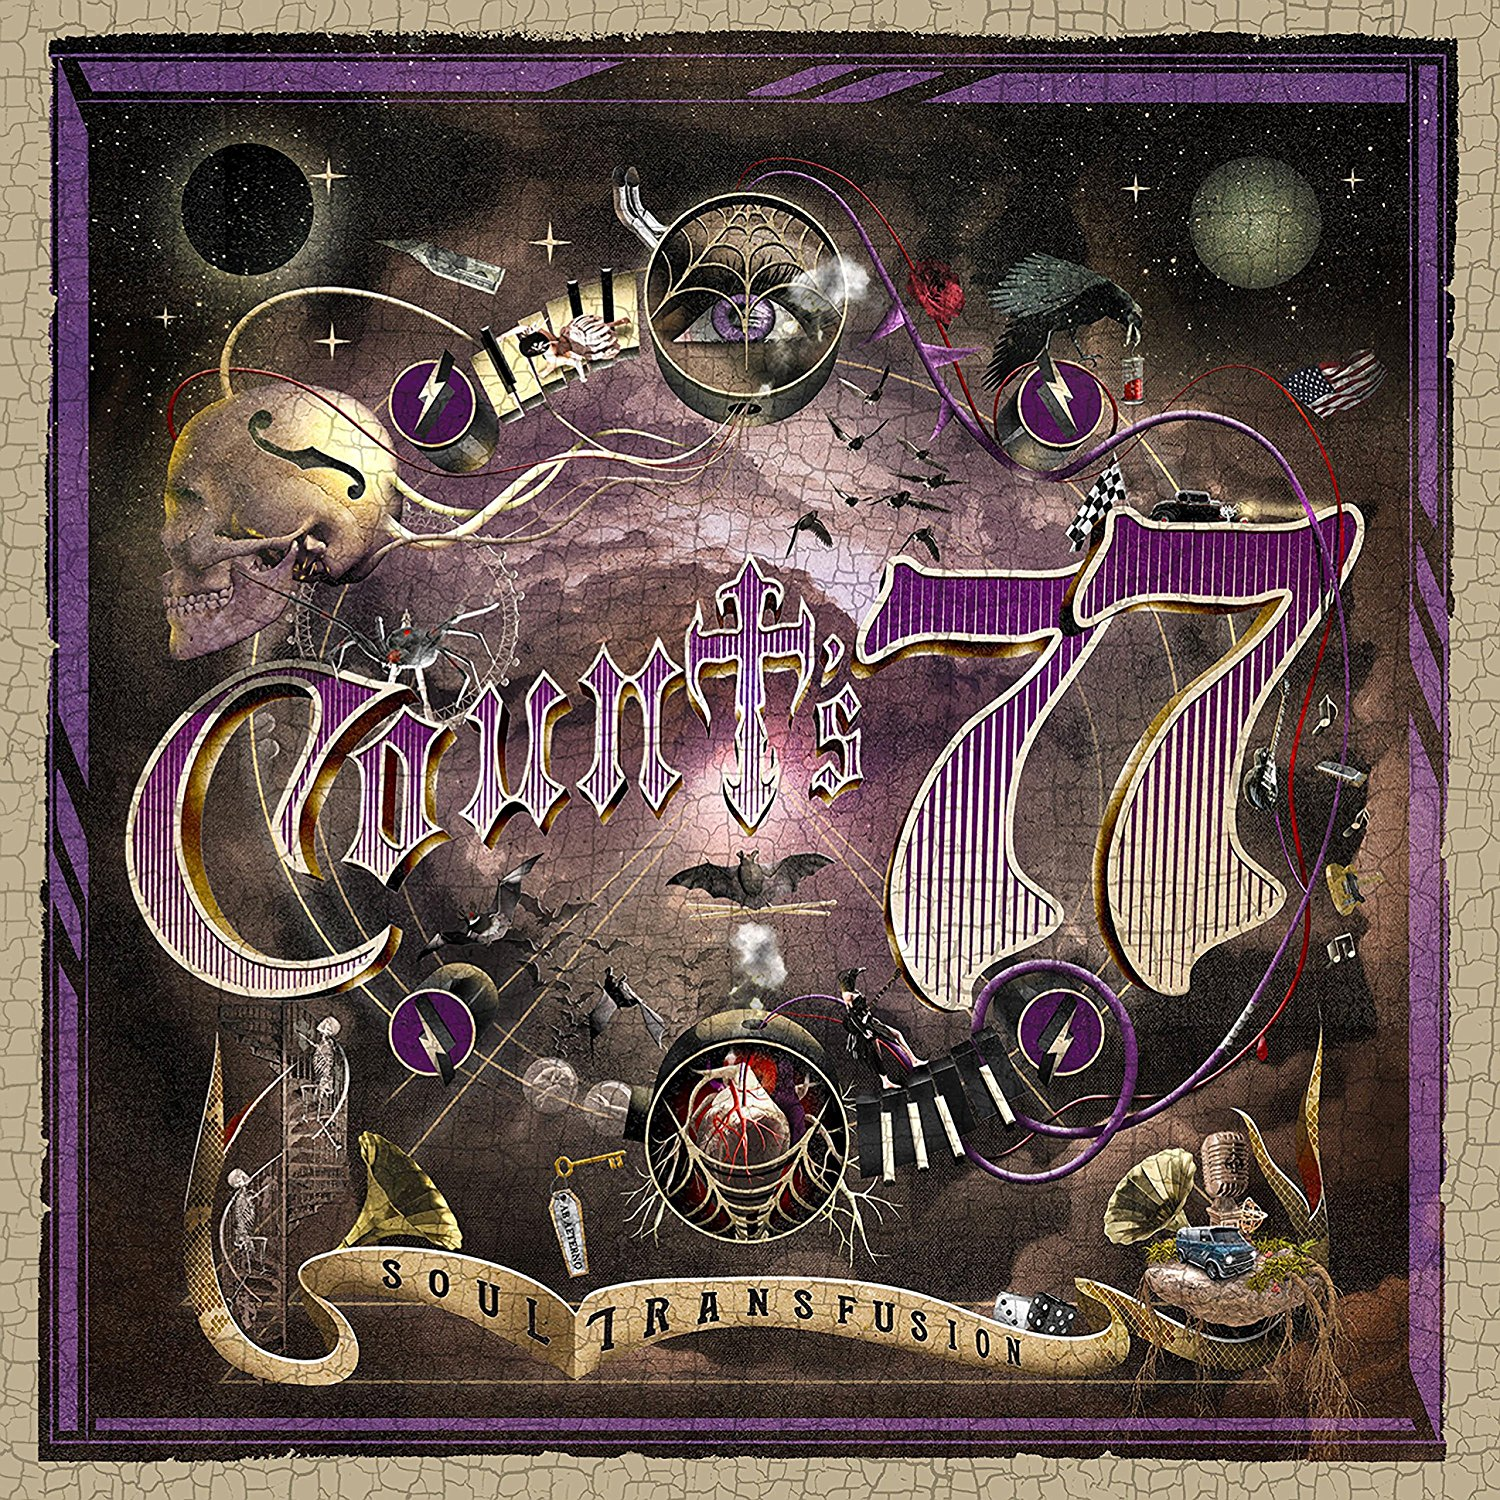 Count's 77 - Soul Transfusion